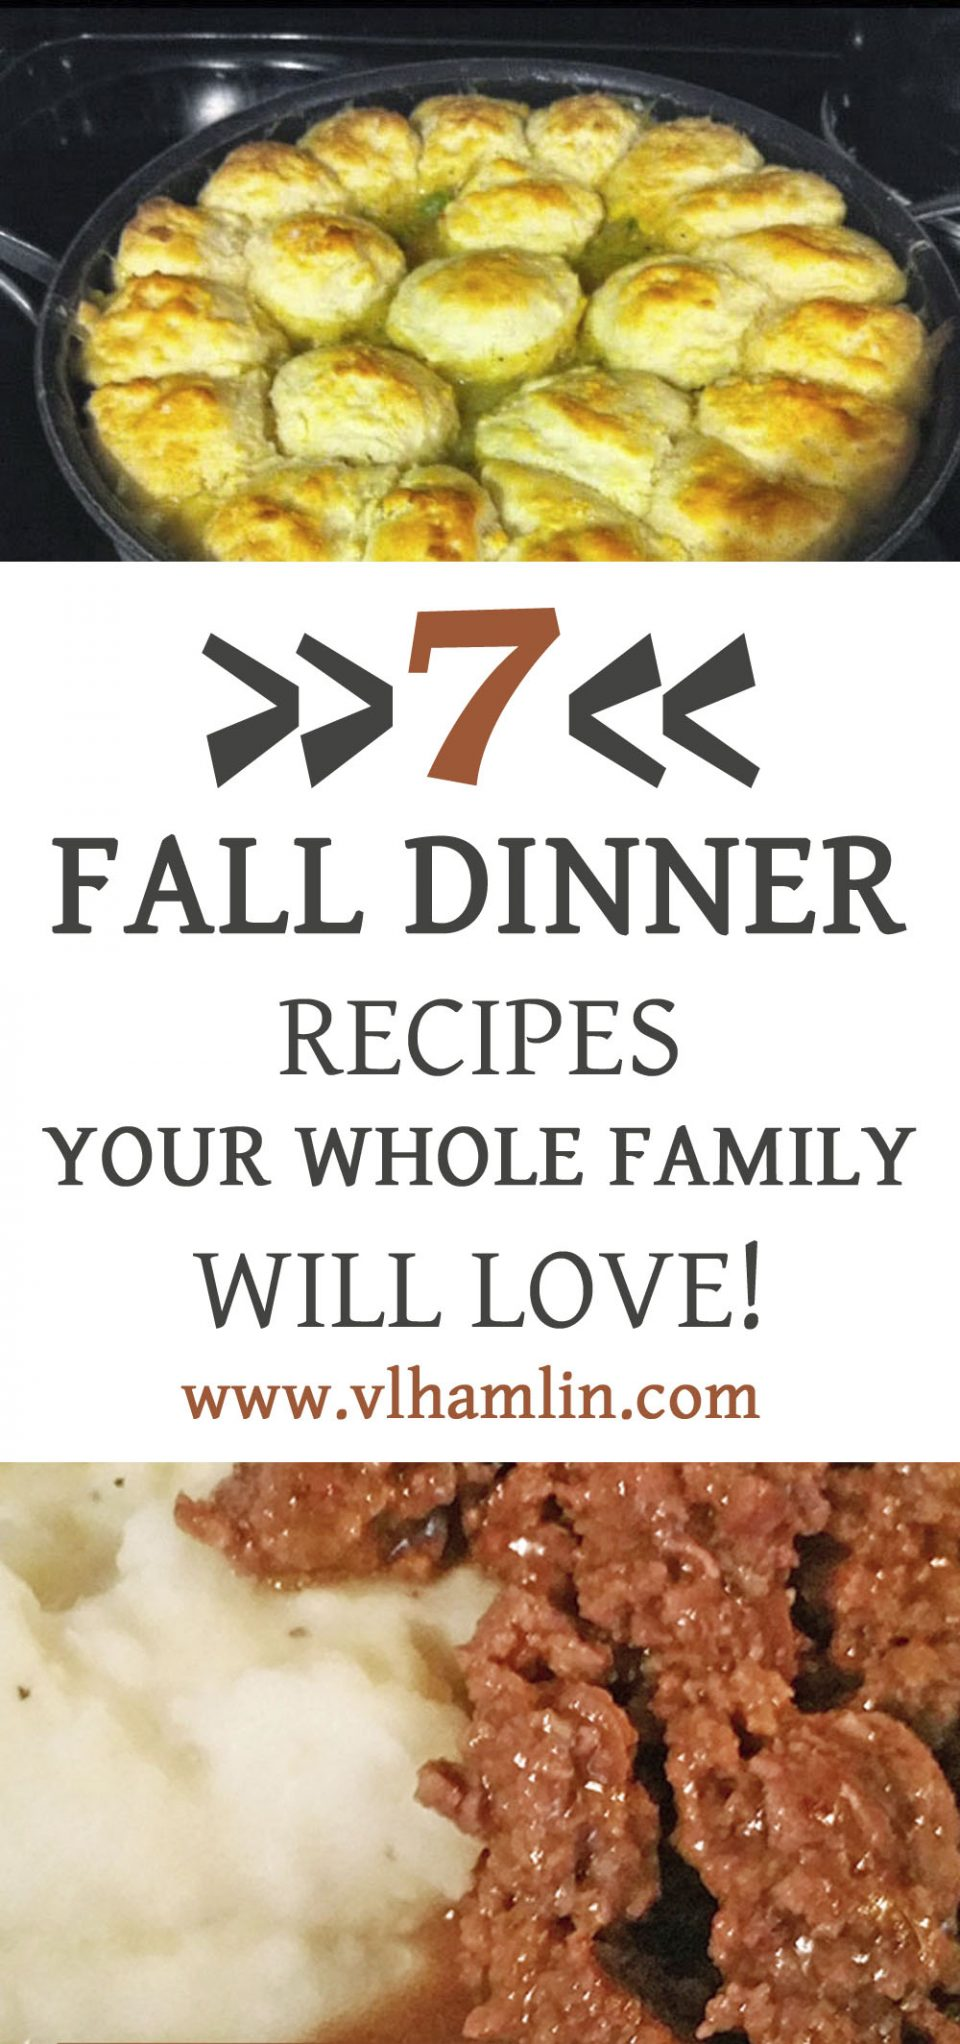 7 Fall Dinner Recipes Your Whole Family Will Love